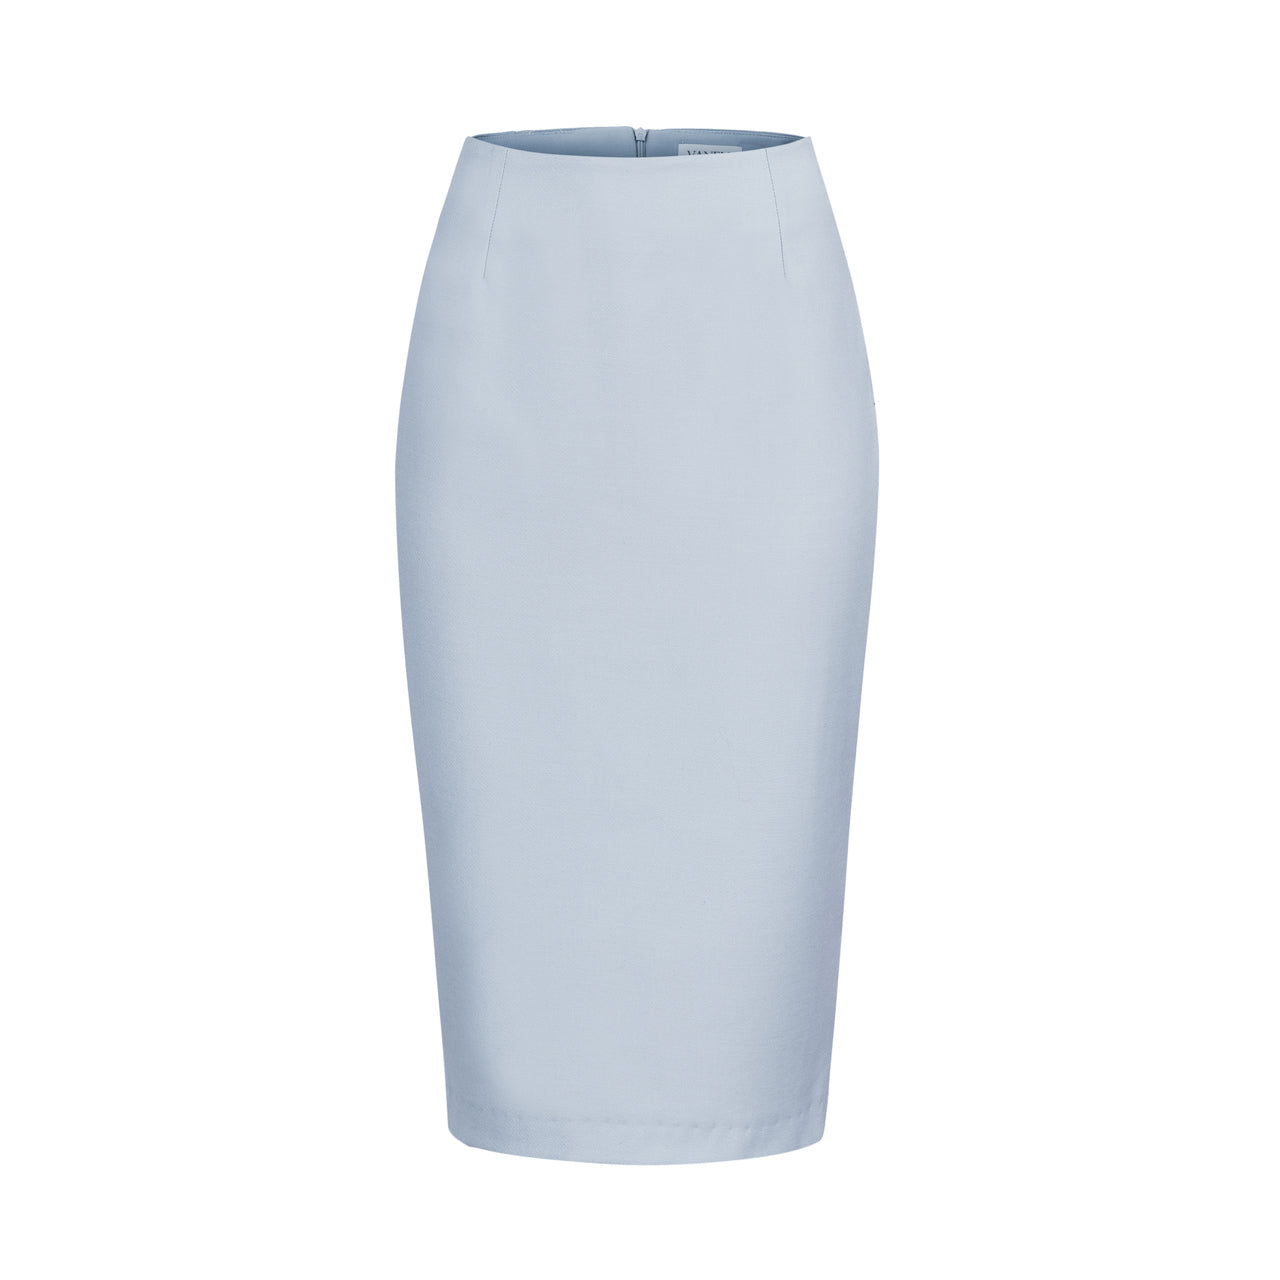 BLUE AND GRAY PENCIL SKIRT